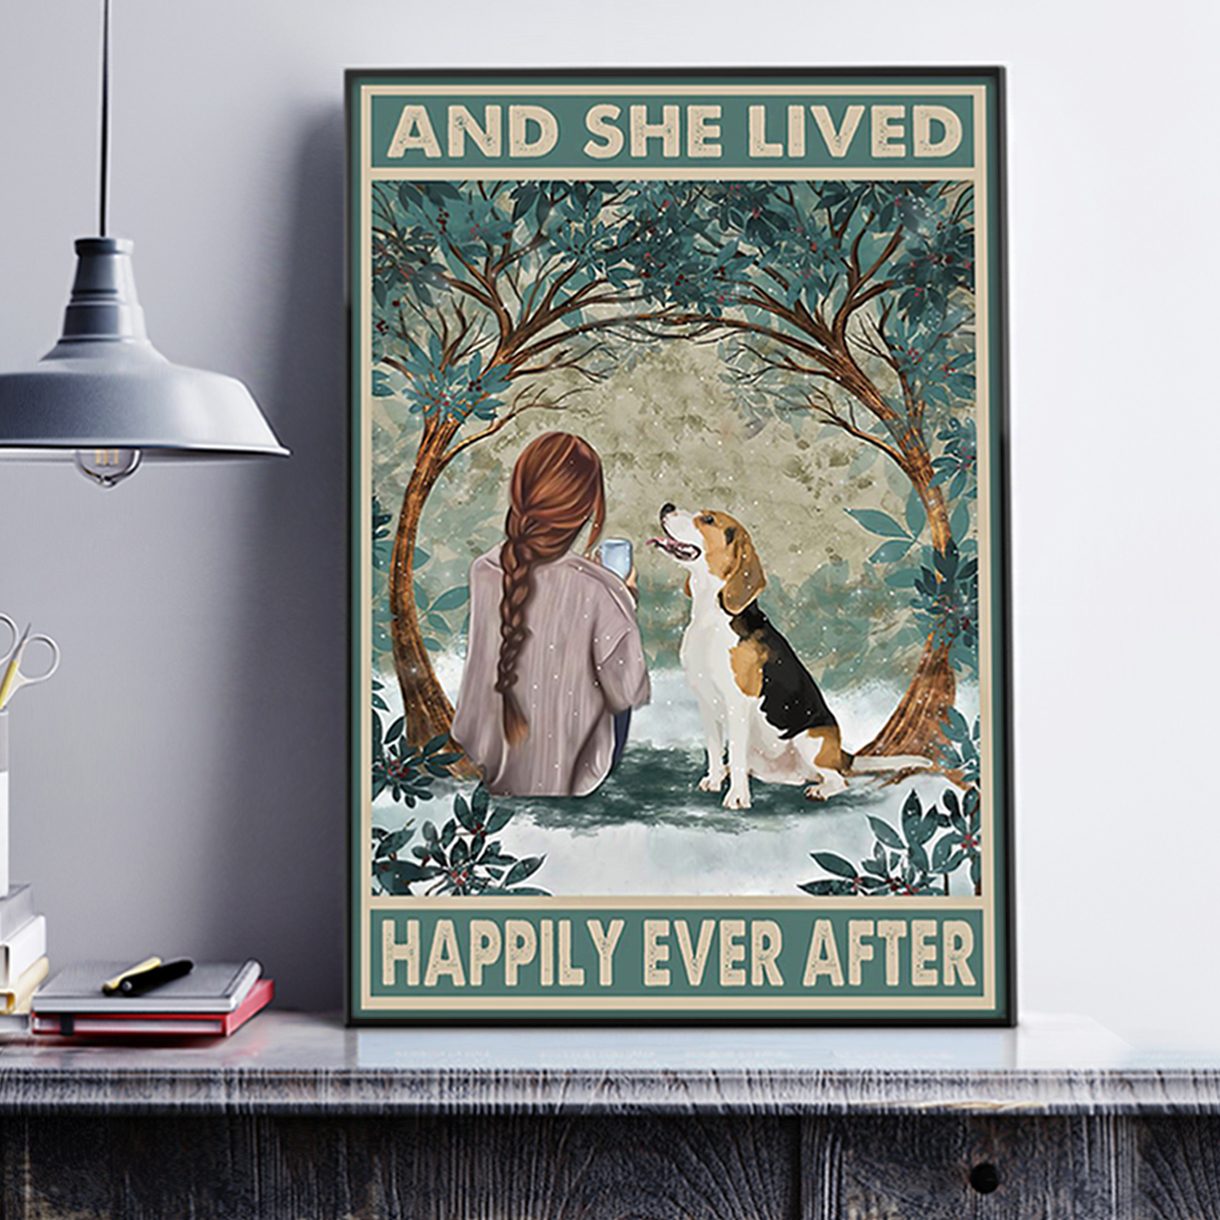 Beagle and she lived happily ever after poster A3